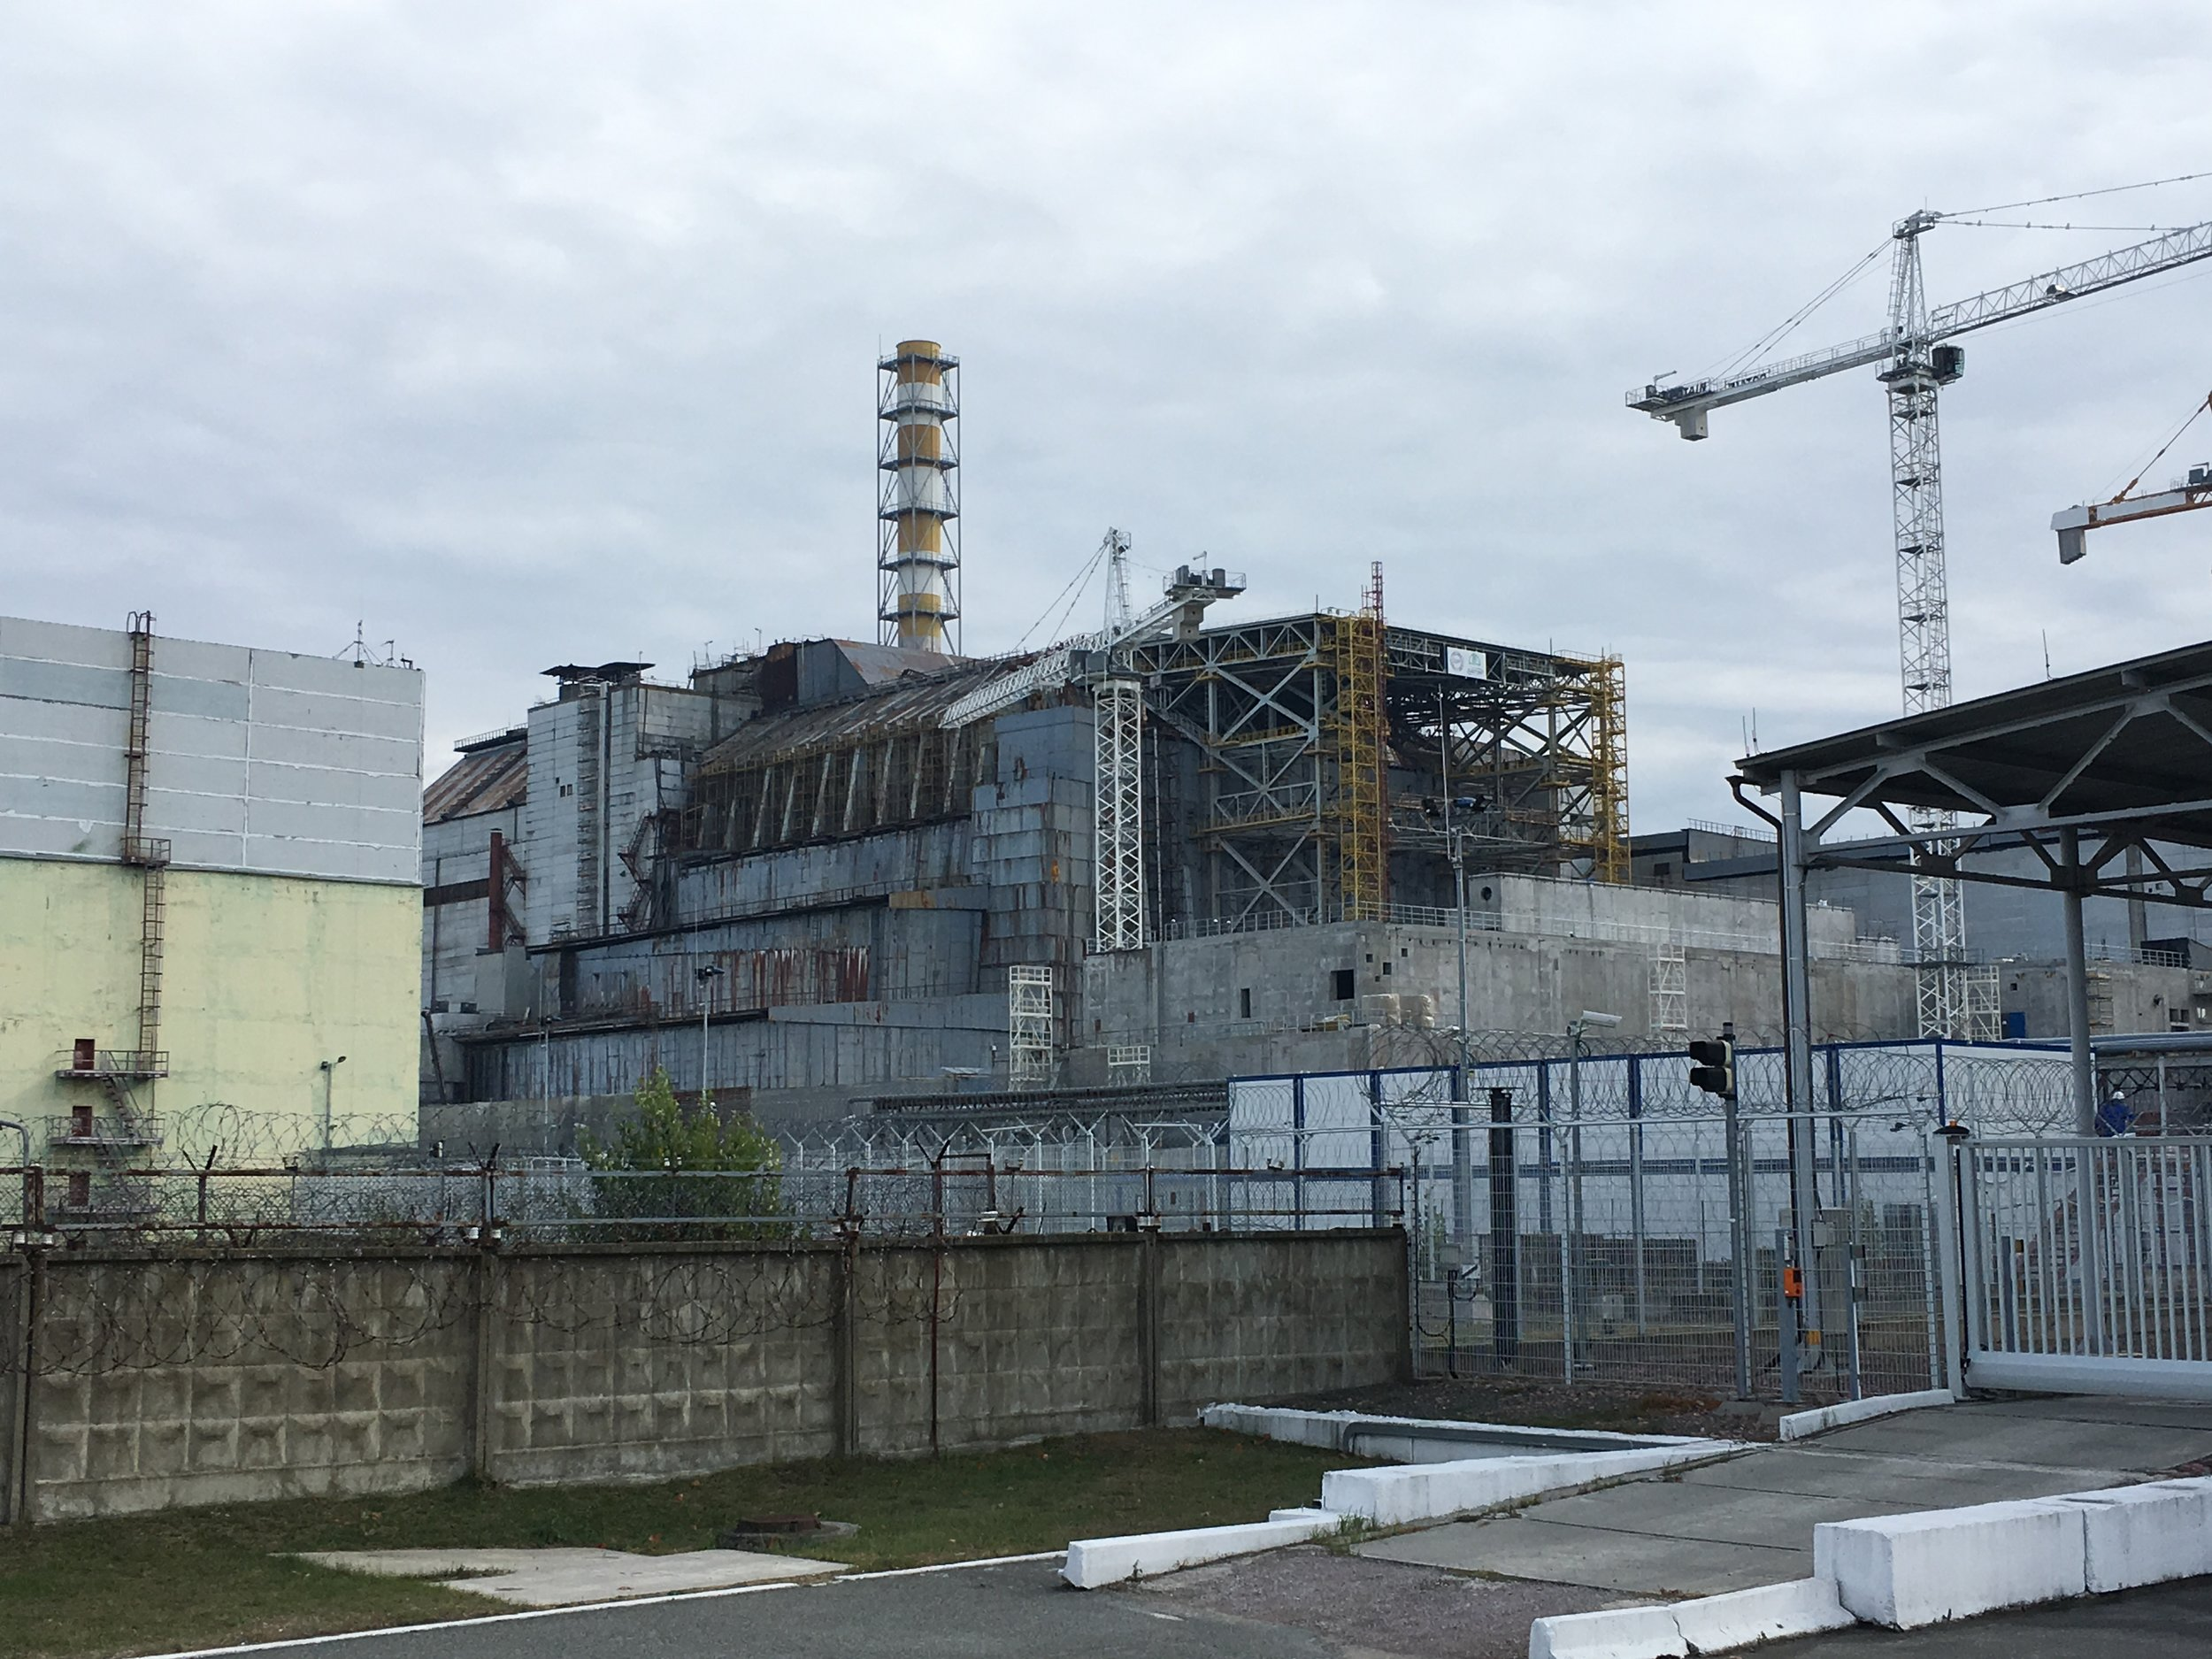 Chernobyl reactor 4, where the nuclear meltdown occurred on April 26, 1986